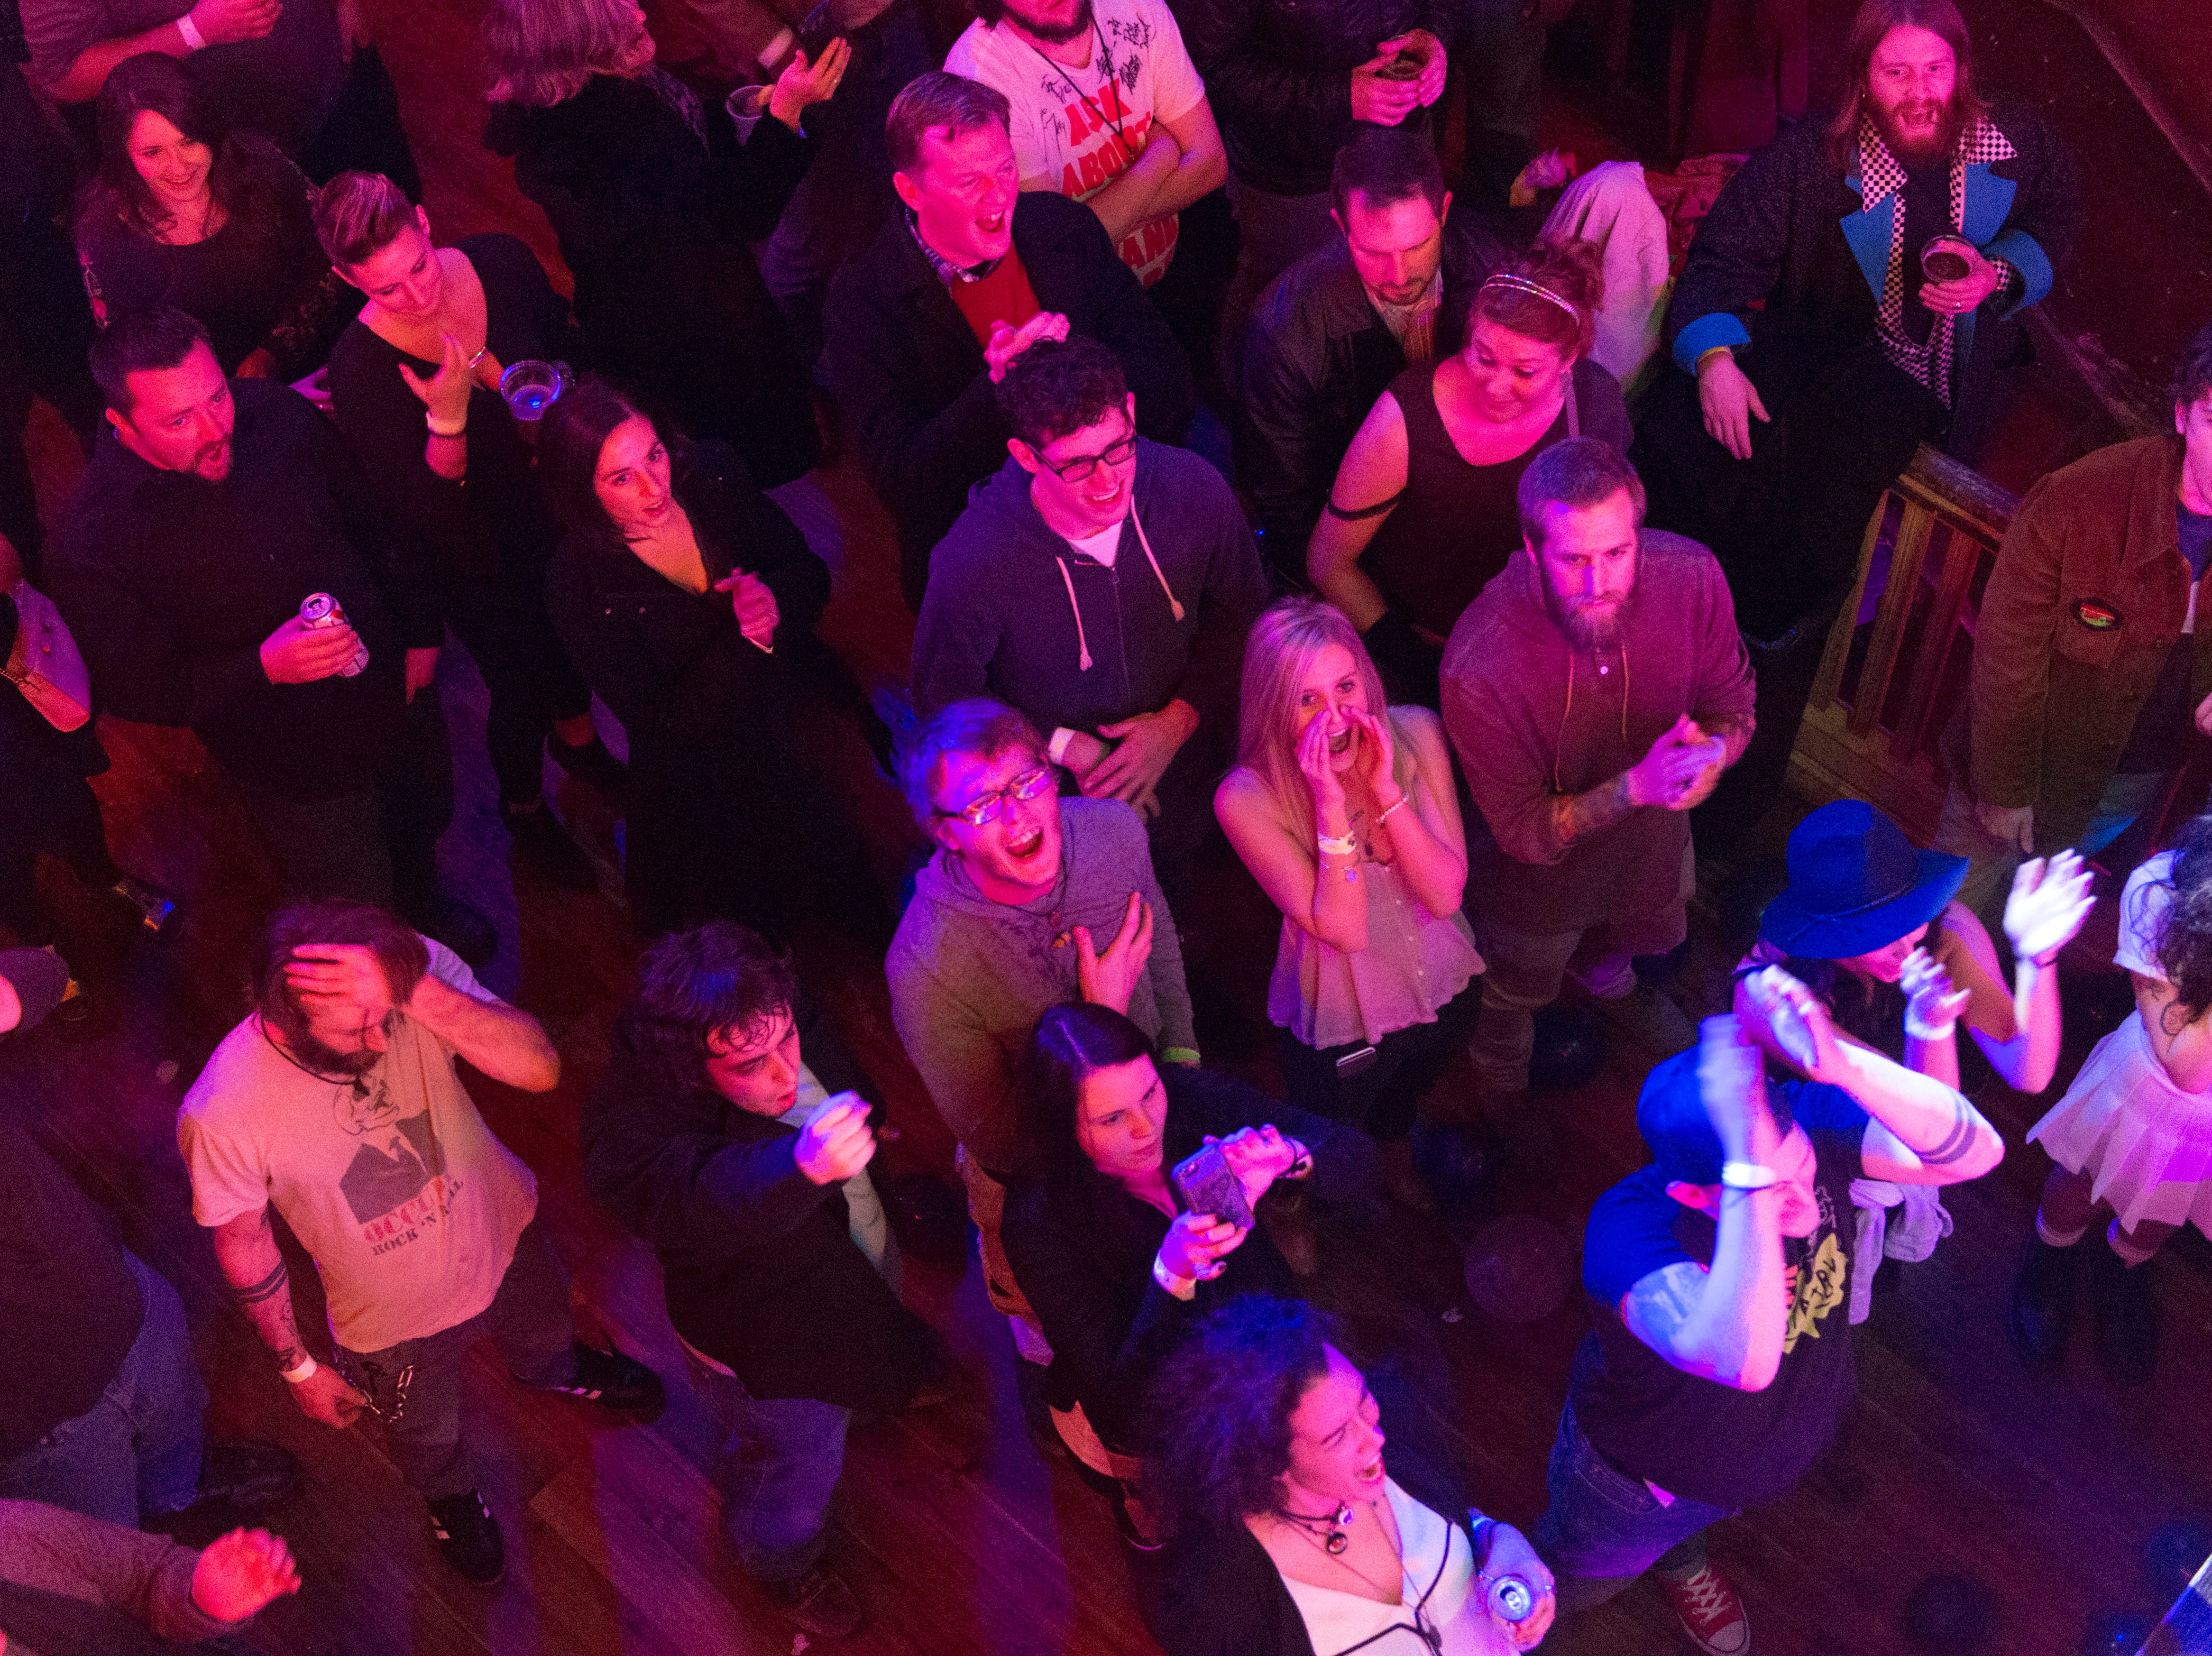 The crowd cheer on the band, Crumbsnatchers, at Scruffy City Hall on New Year's Eve, Thursday, December 31, 2015.